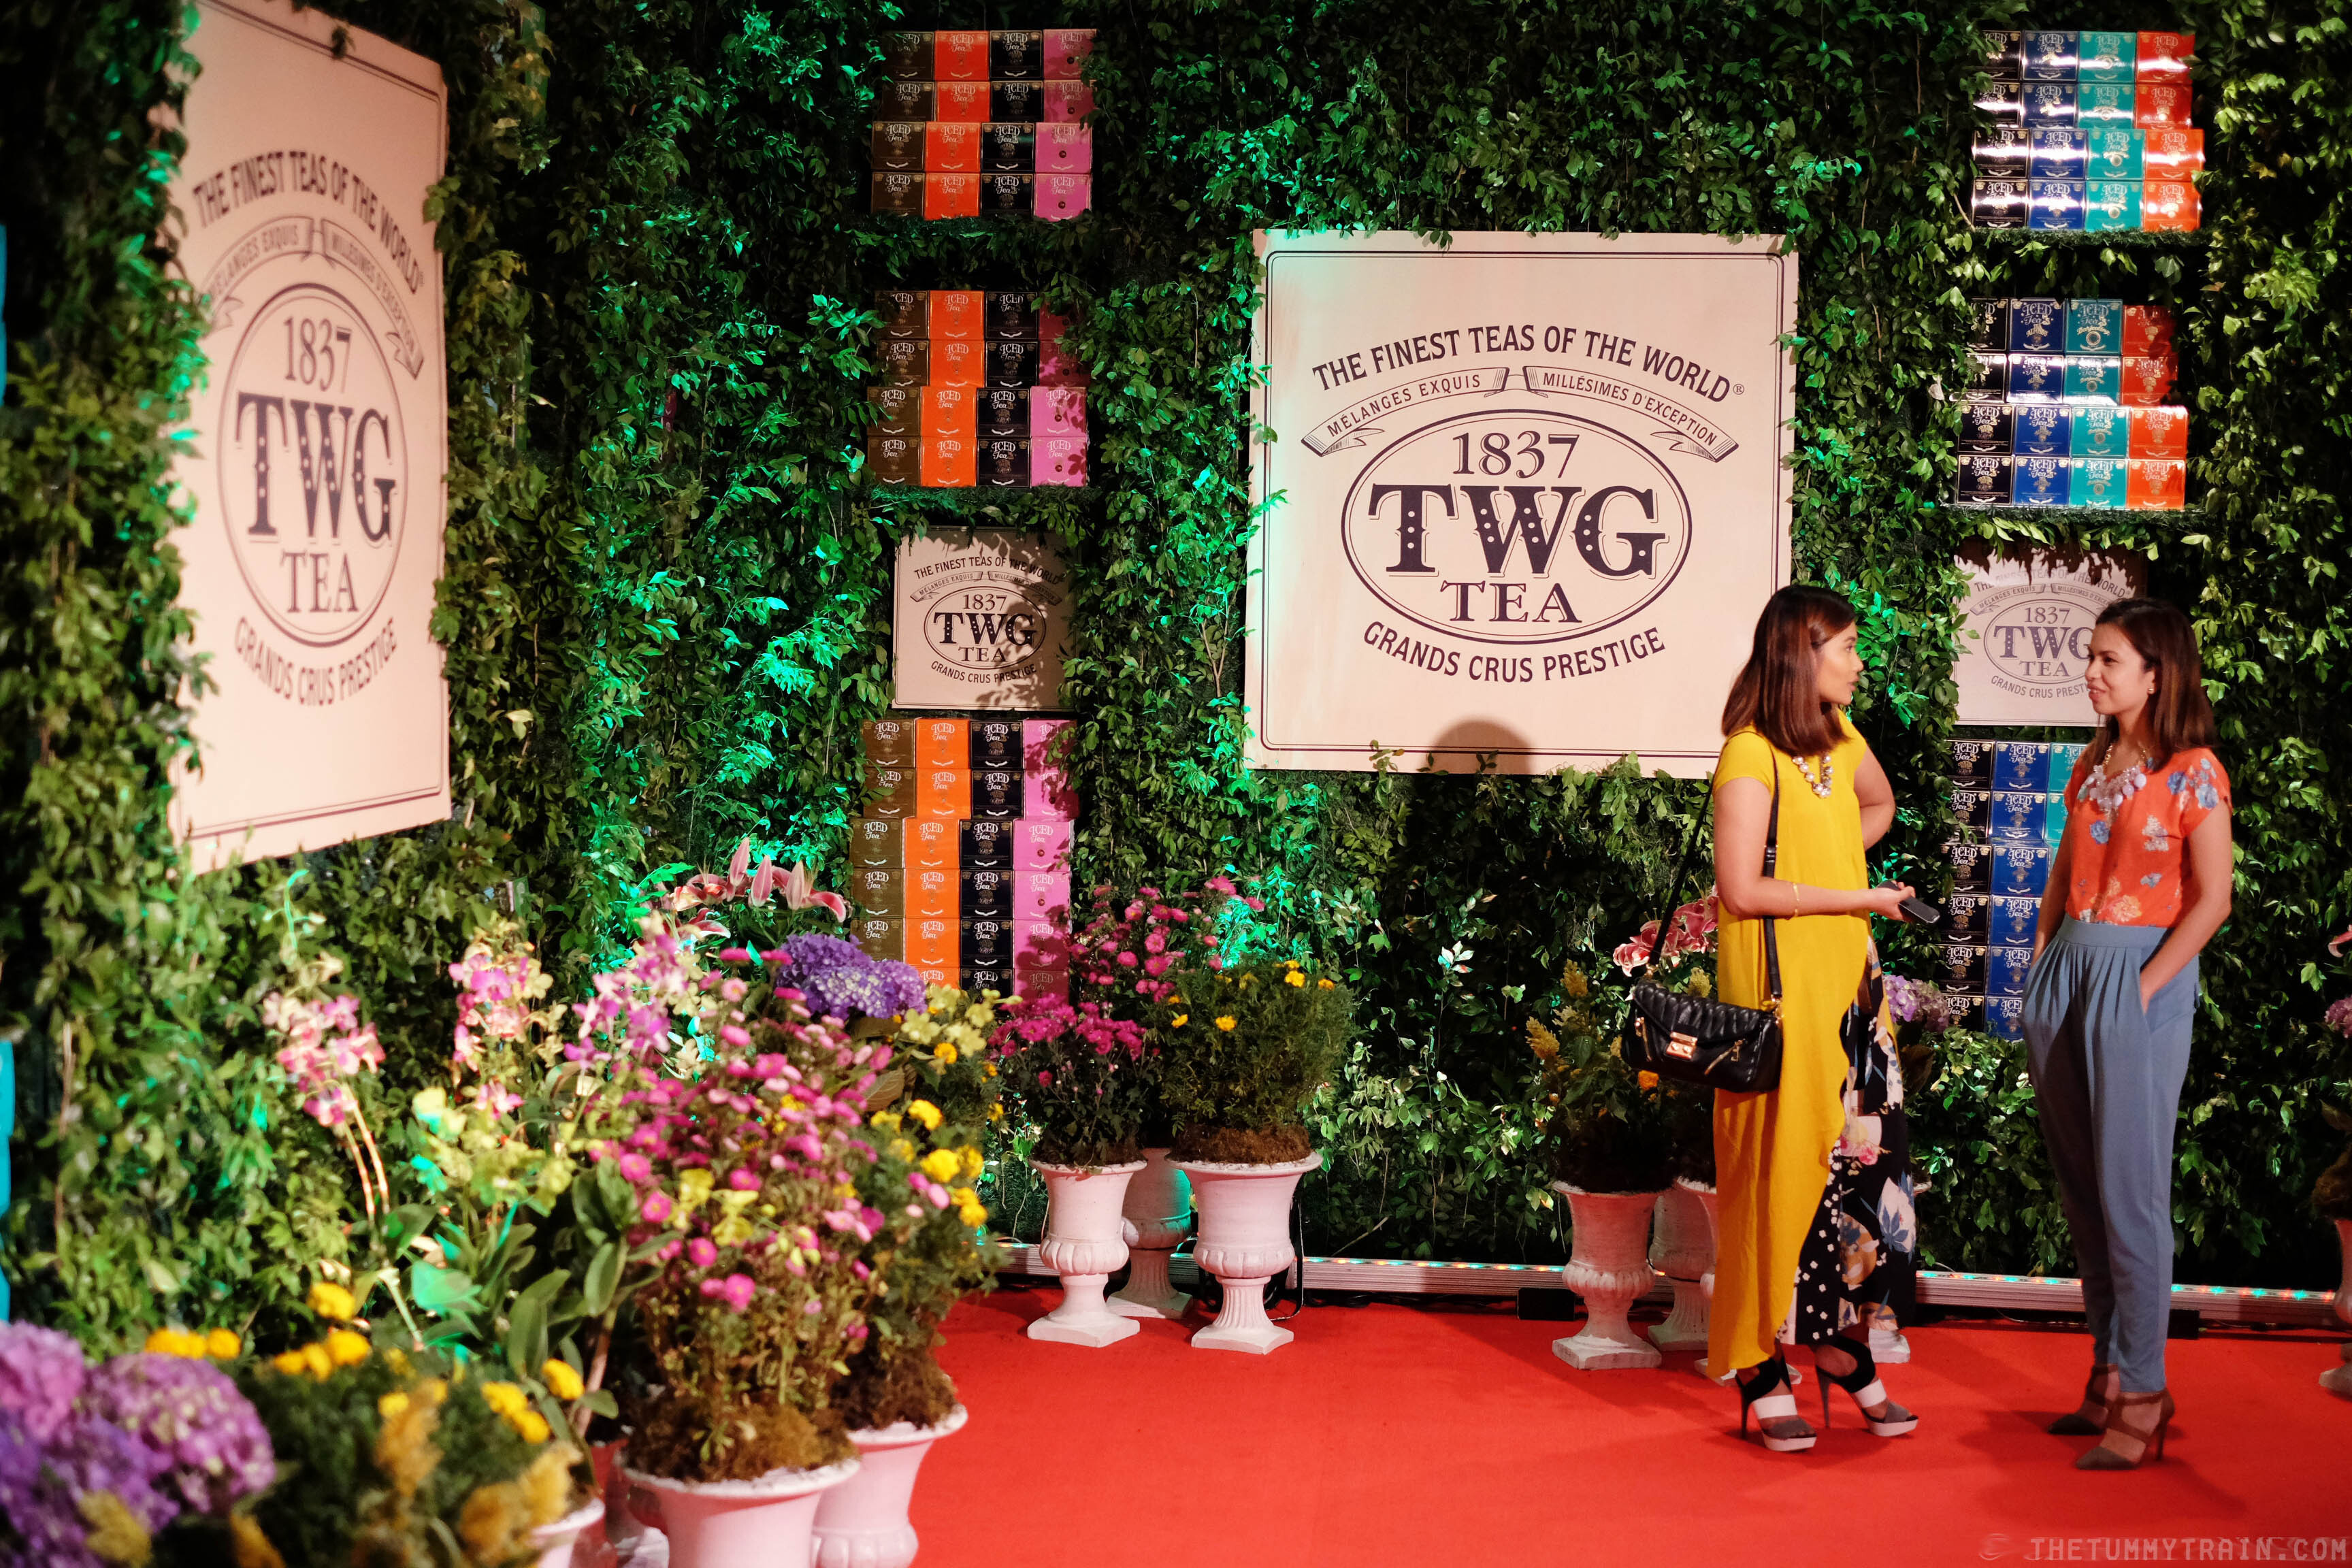 Beat the heat in luxurious style with the new TWG Iced Teas